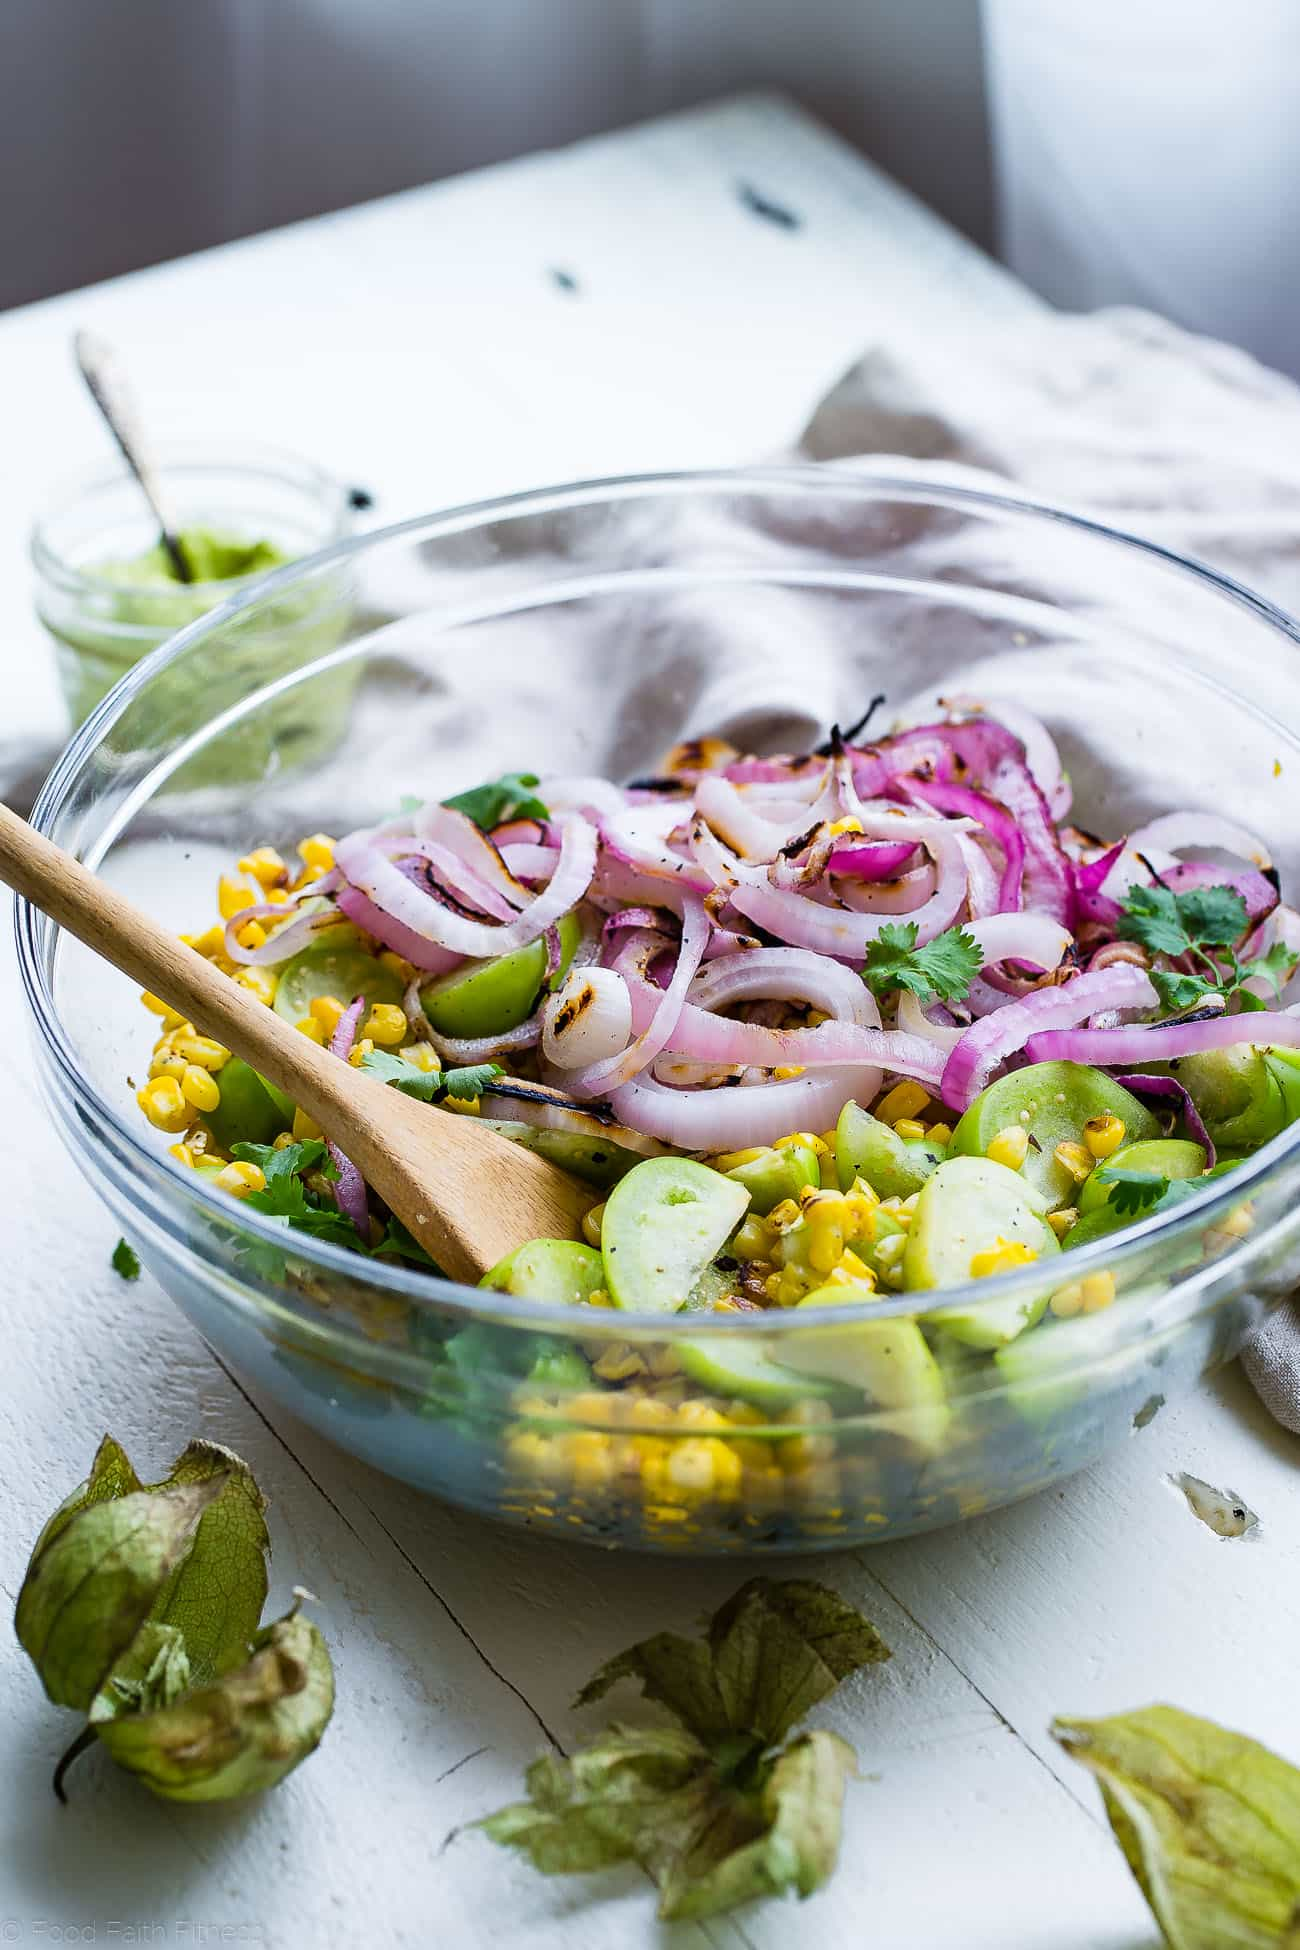 Grilled Corn and Tomatillo Salad in Bowl. Recipe on Foodfaithfitness.com